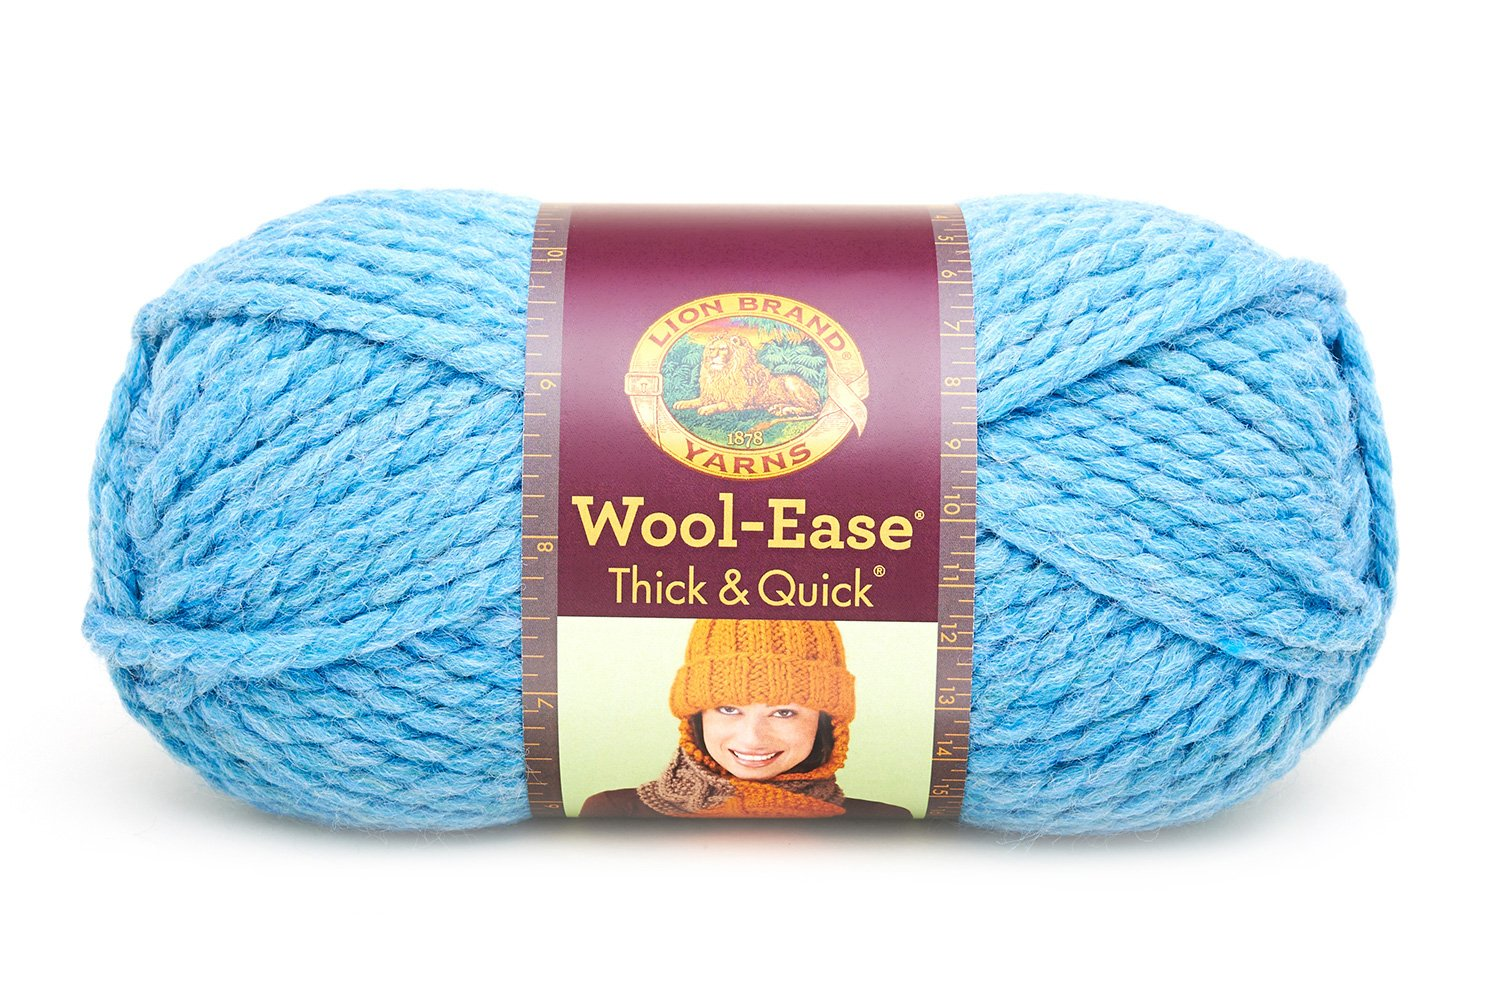 Raisin Pack of 3 skeins Lion Brand Yarn 640-144 Wool-Ease Thick /& Quick Yarn